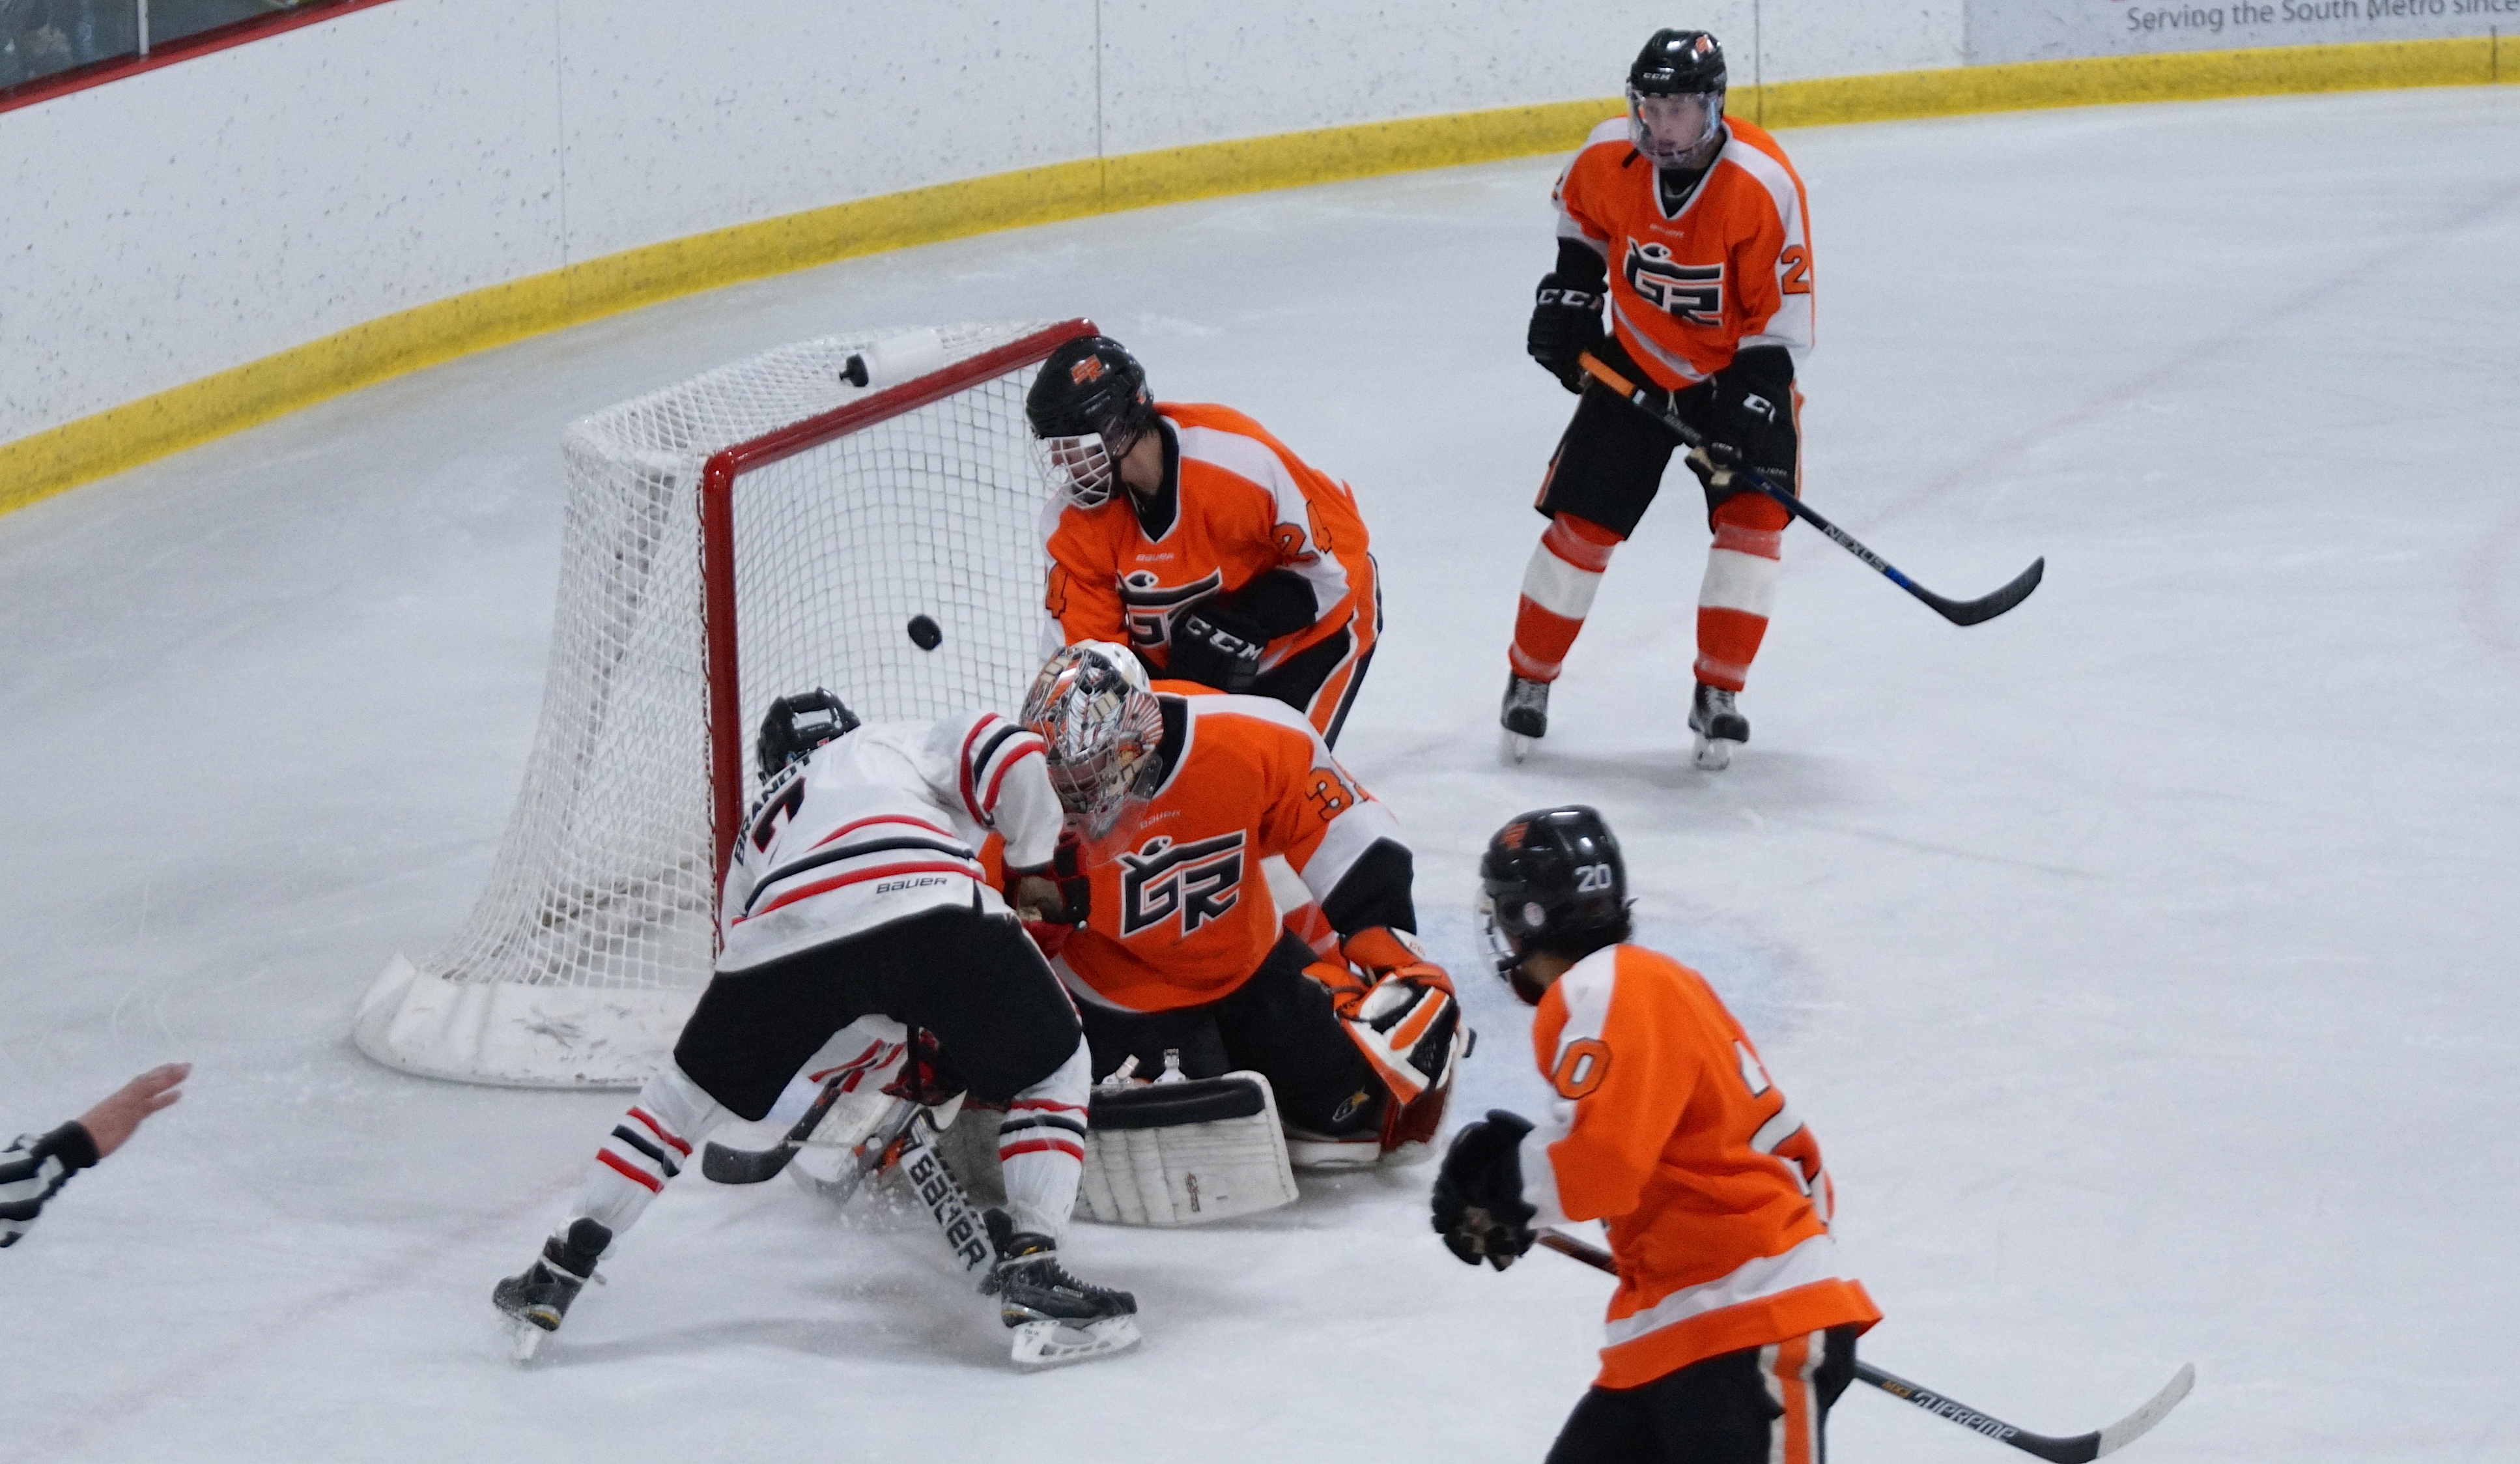 MN H.S.: Defending Champs Edge Grand Rapids In OT